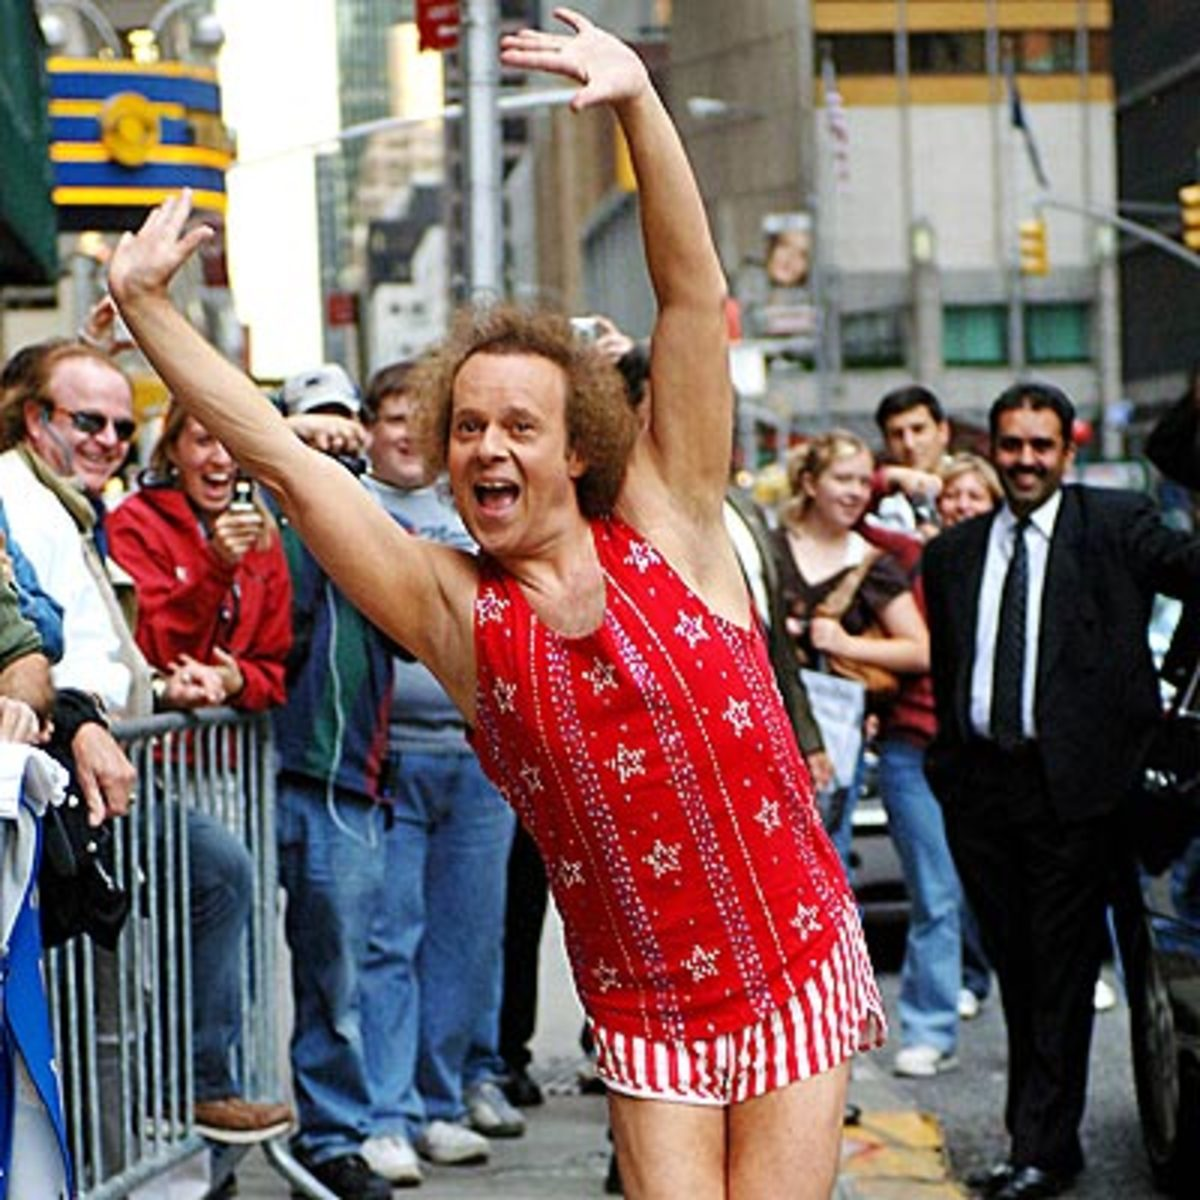 Sweating with Richard Simmons Sweatin' to the Oldies - Exercise DVD and Weight Loss Program